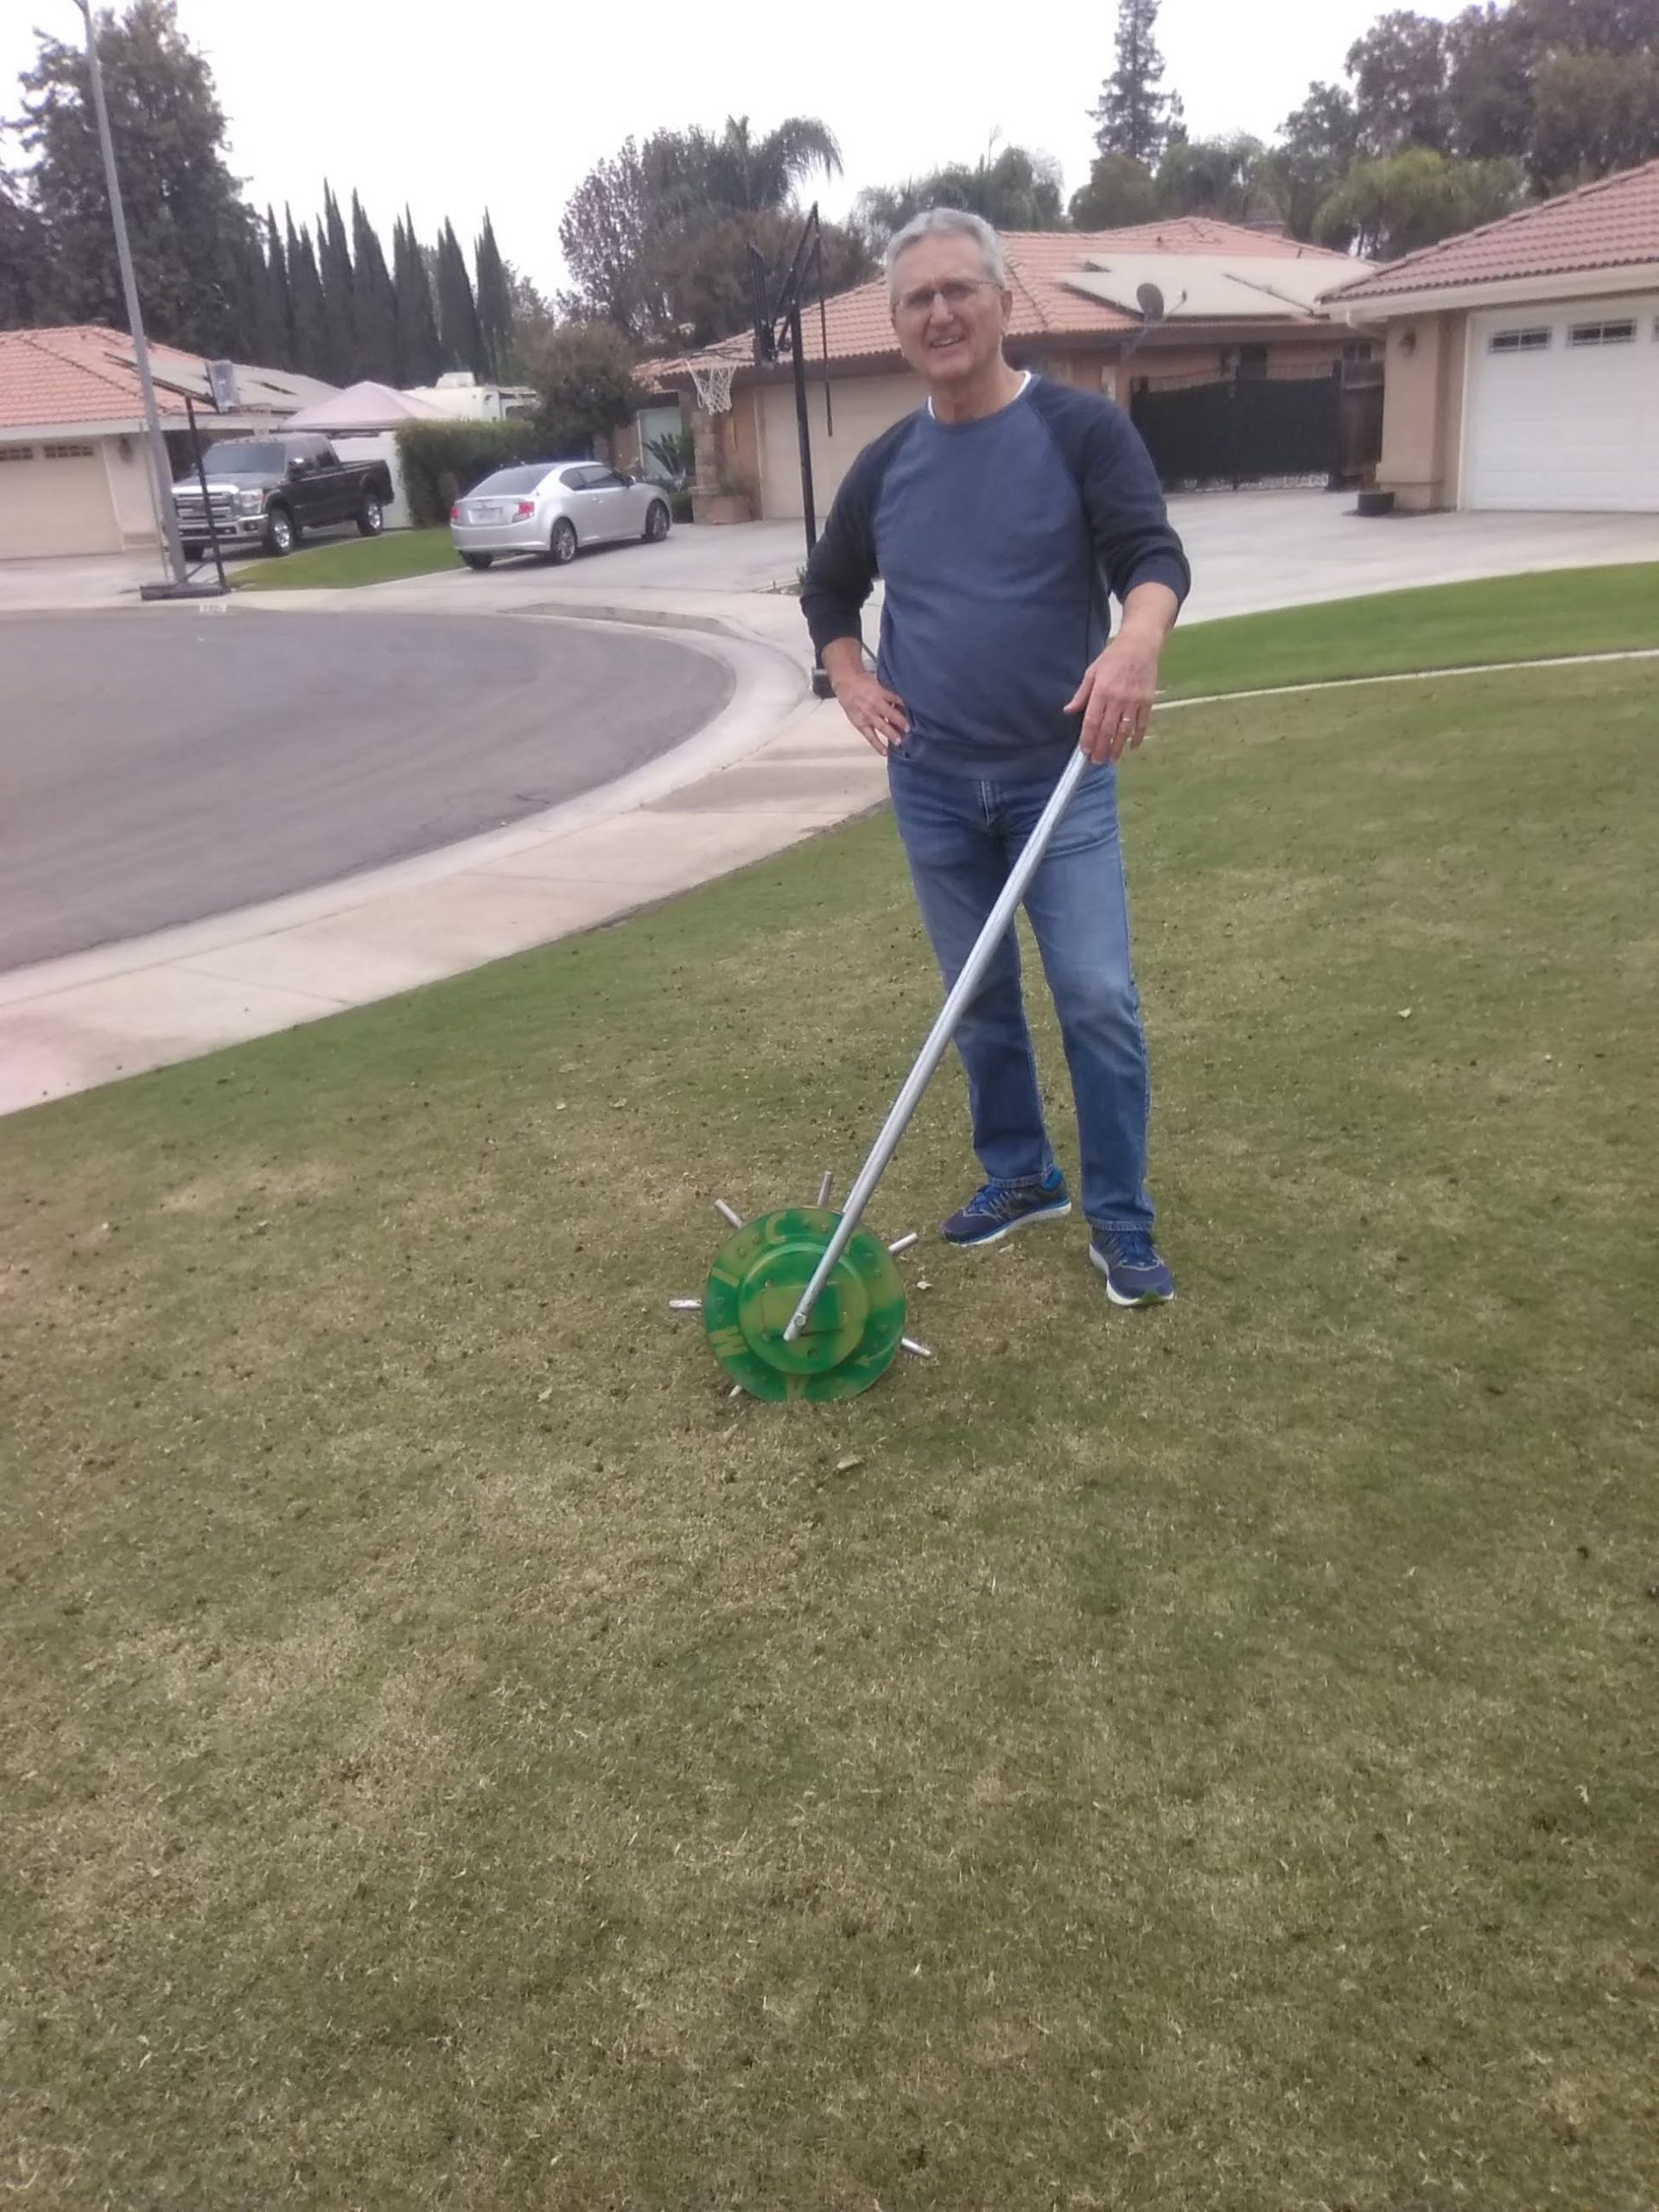 The #1 Lawn Aerator Tool, Lawn Aerator For Sale here, we sell the Best Lawn Aerator Tool, Amick Rollaerator!